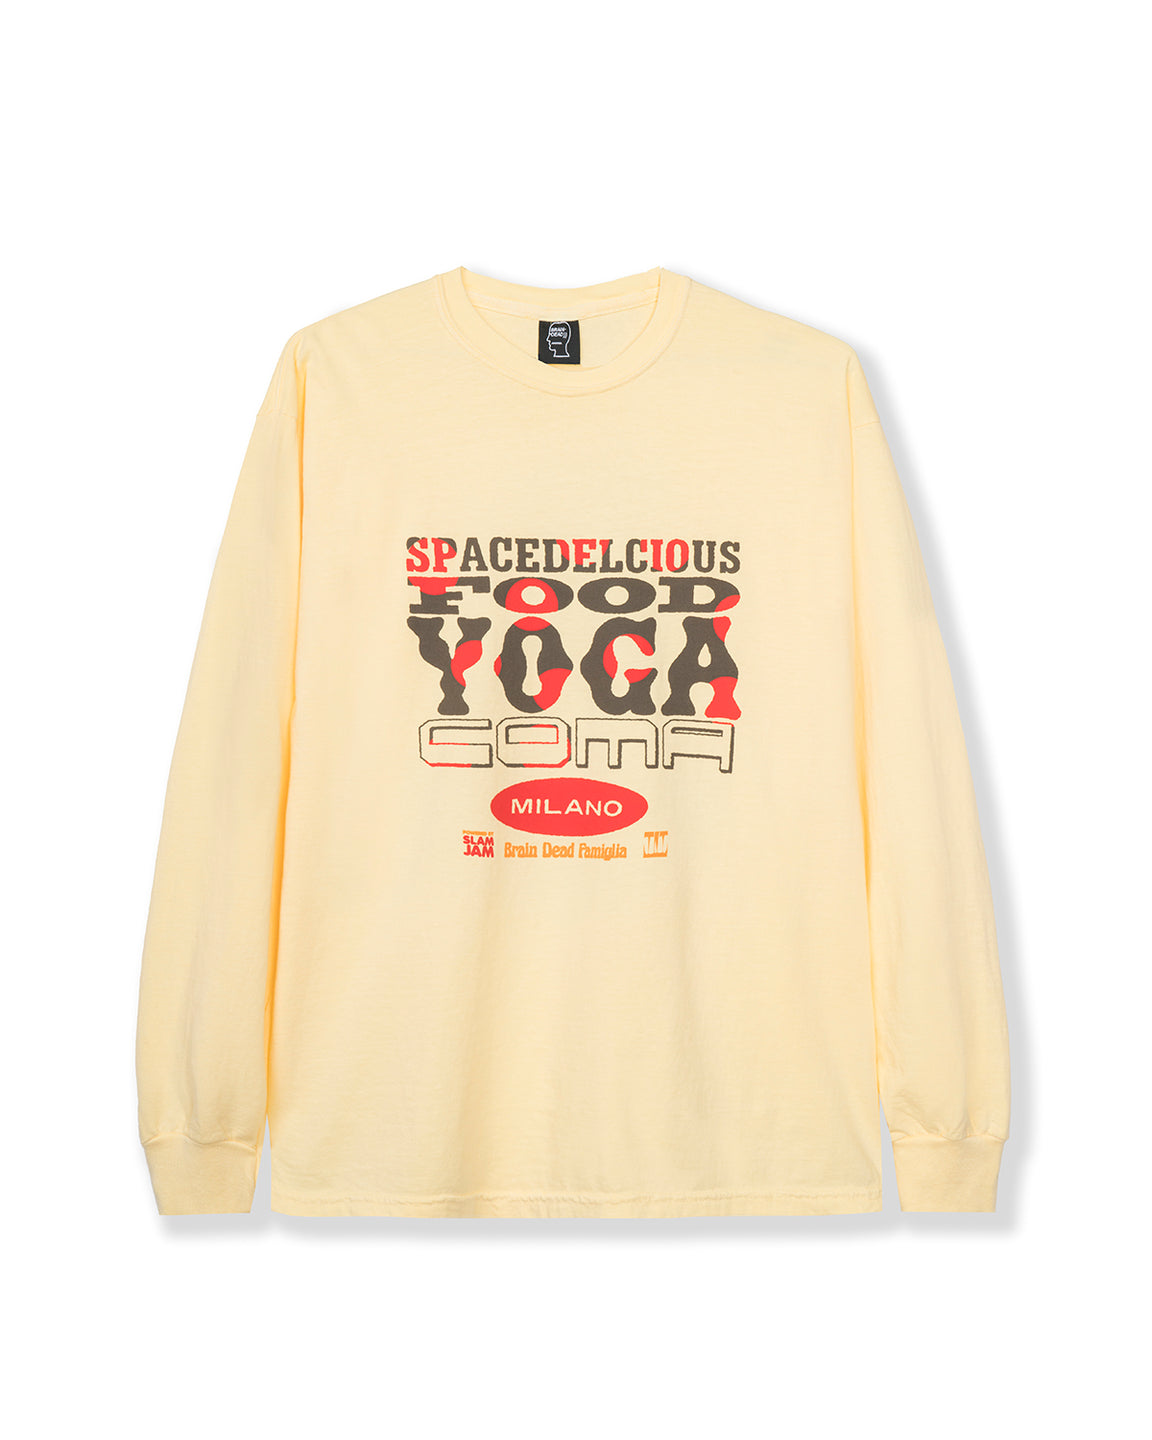 Spacedelicious Food Yoga Coma Long Sleeve - Yellow